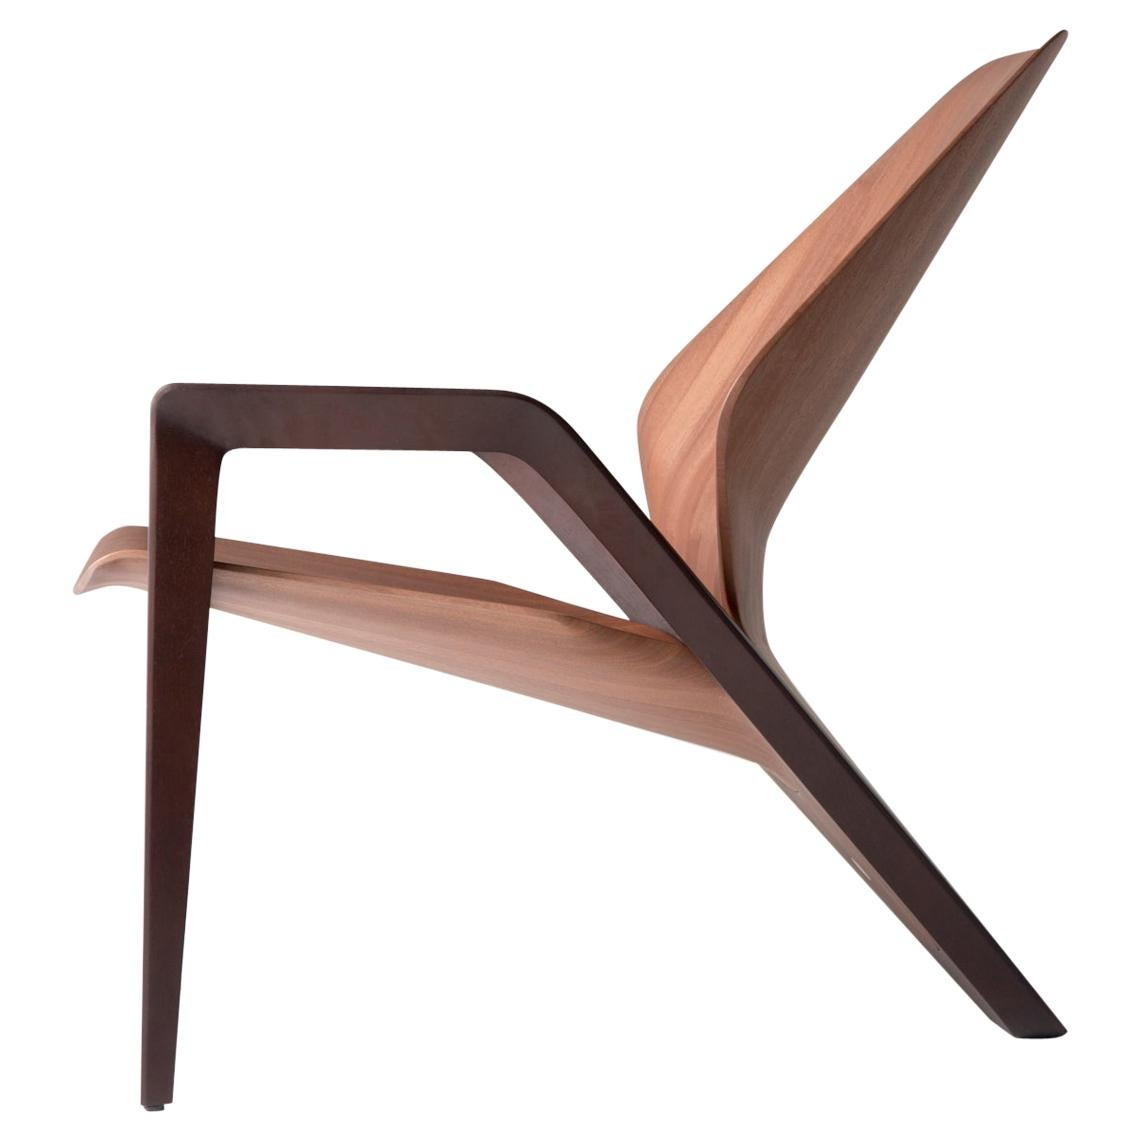 Contemporary Ava Armchair in Wood by Guto Indio da Costa, Brazil